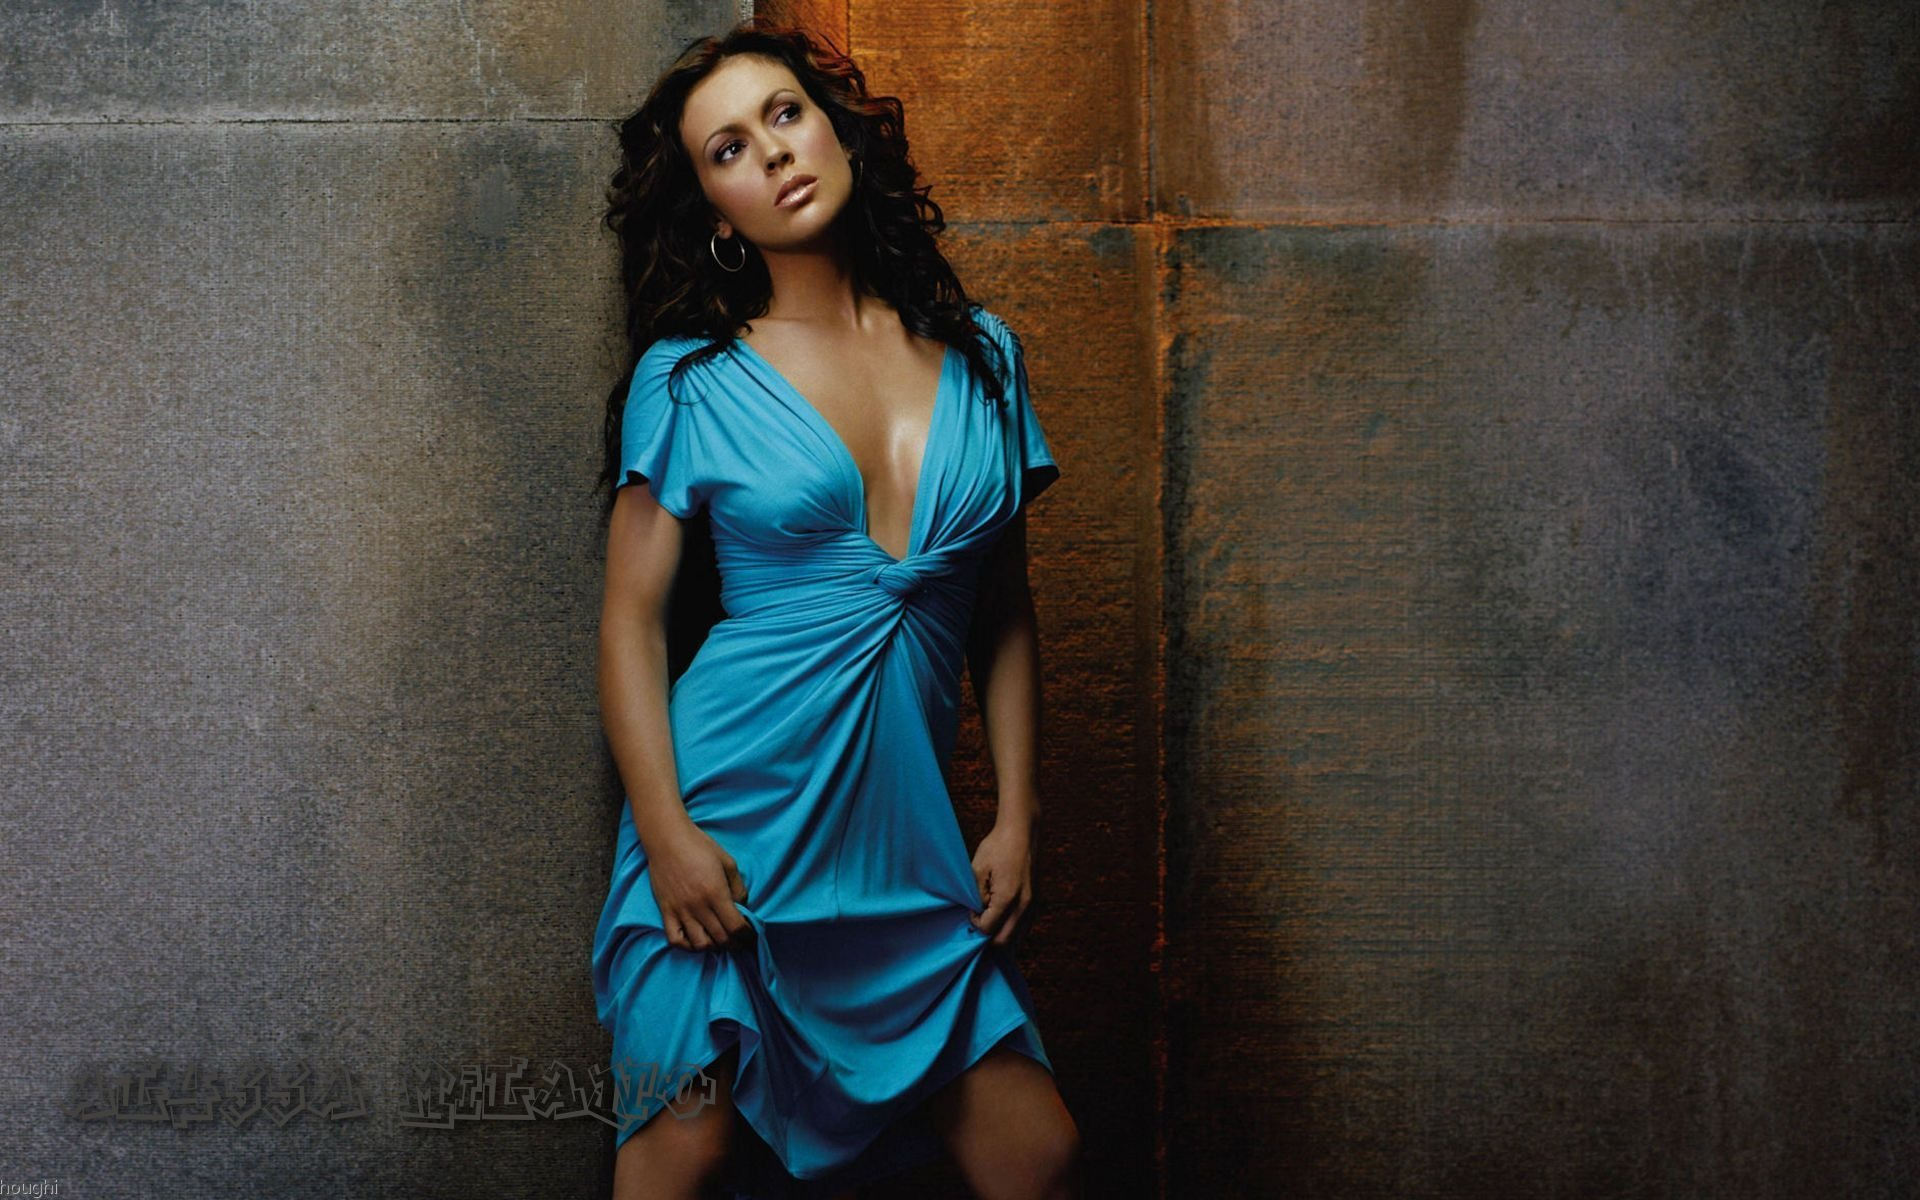 Alyssa Milano #048 - 1920x1200 Wallpapers Pictures Photos Images